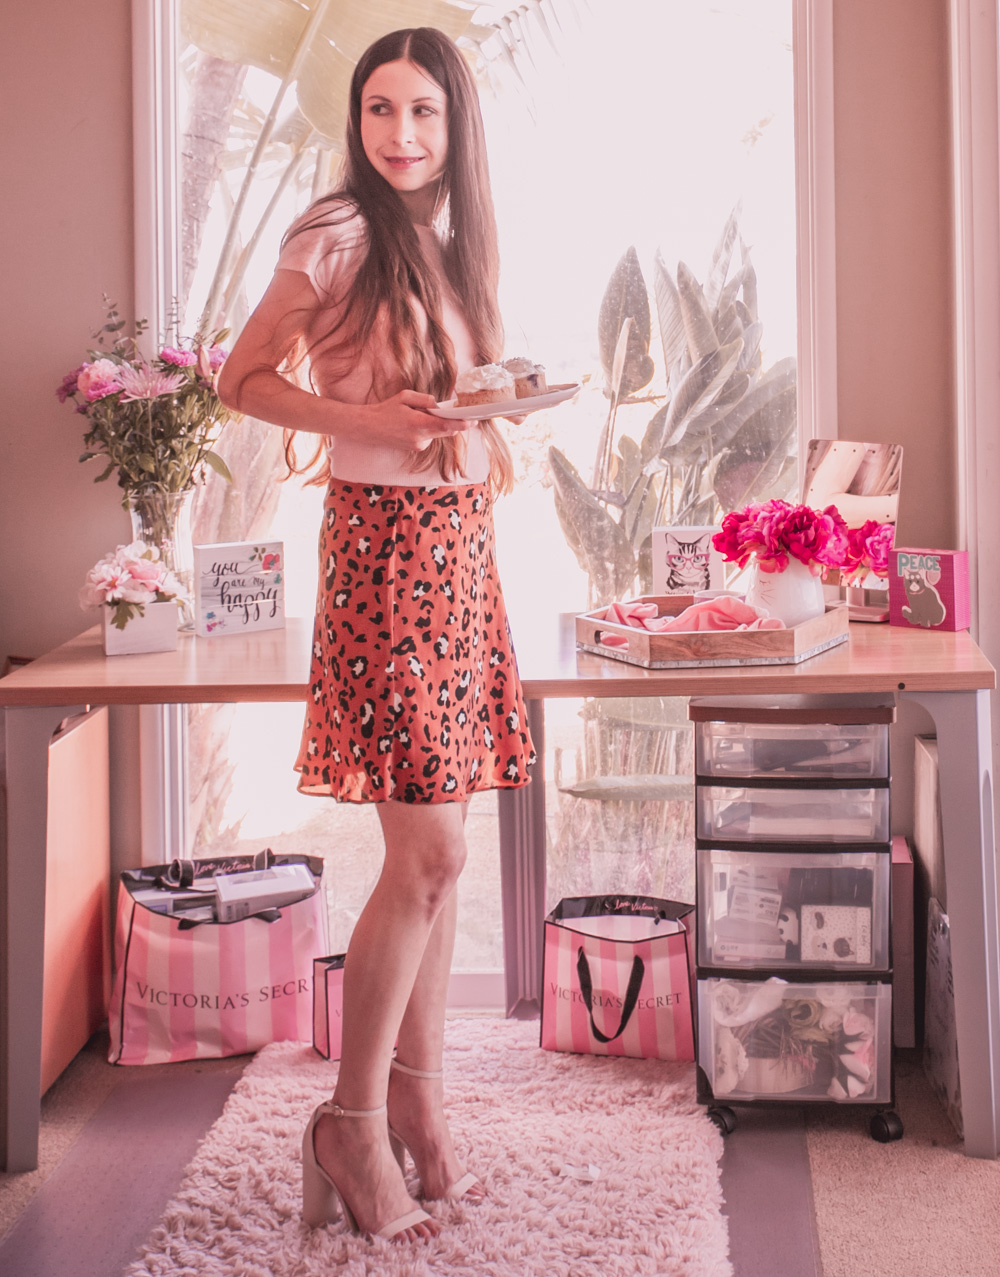 A Pink Top and Animal Print Skirt Outfit